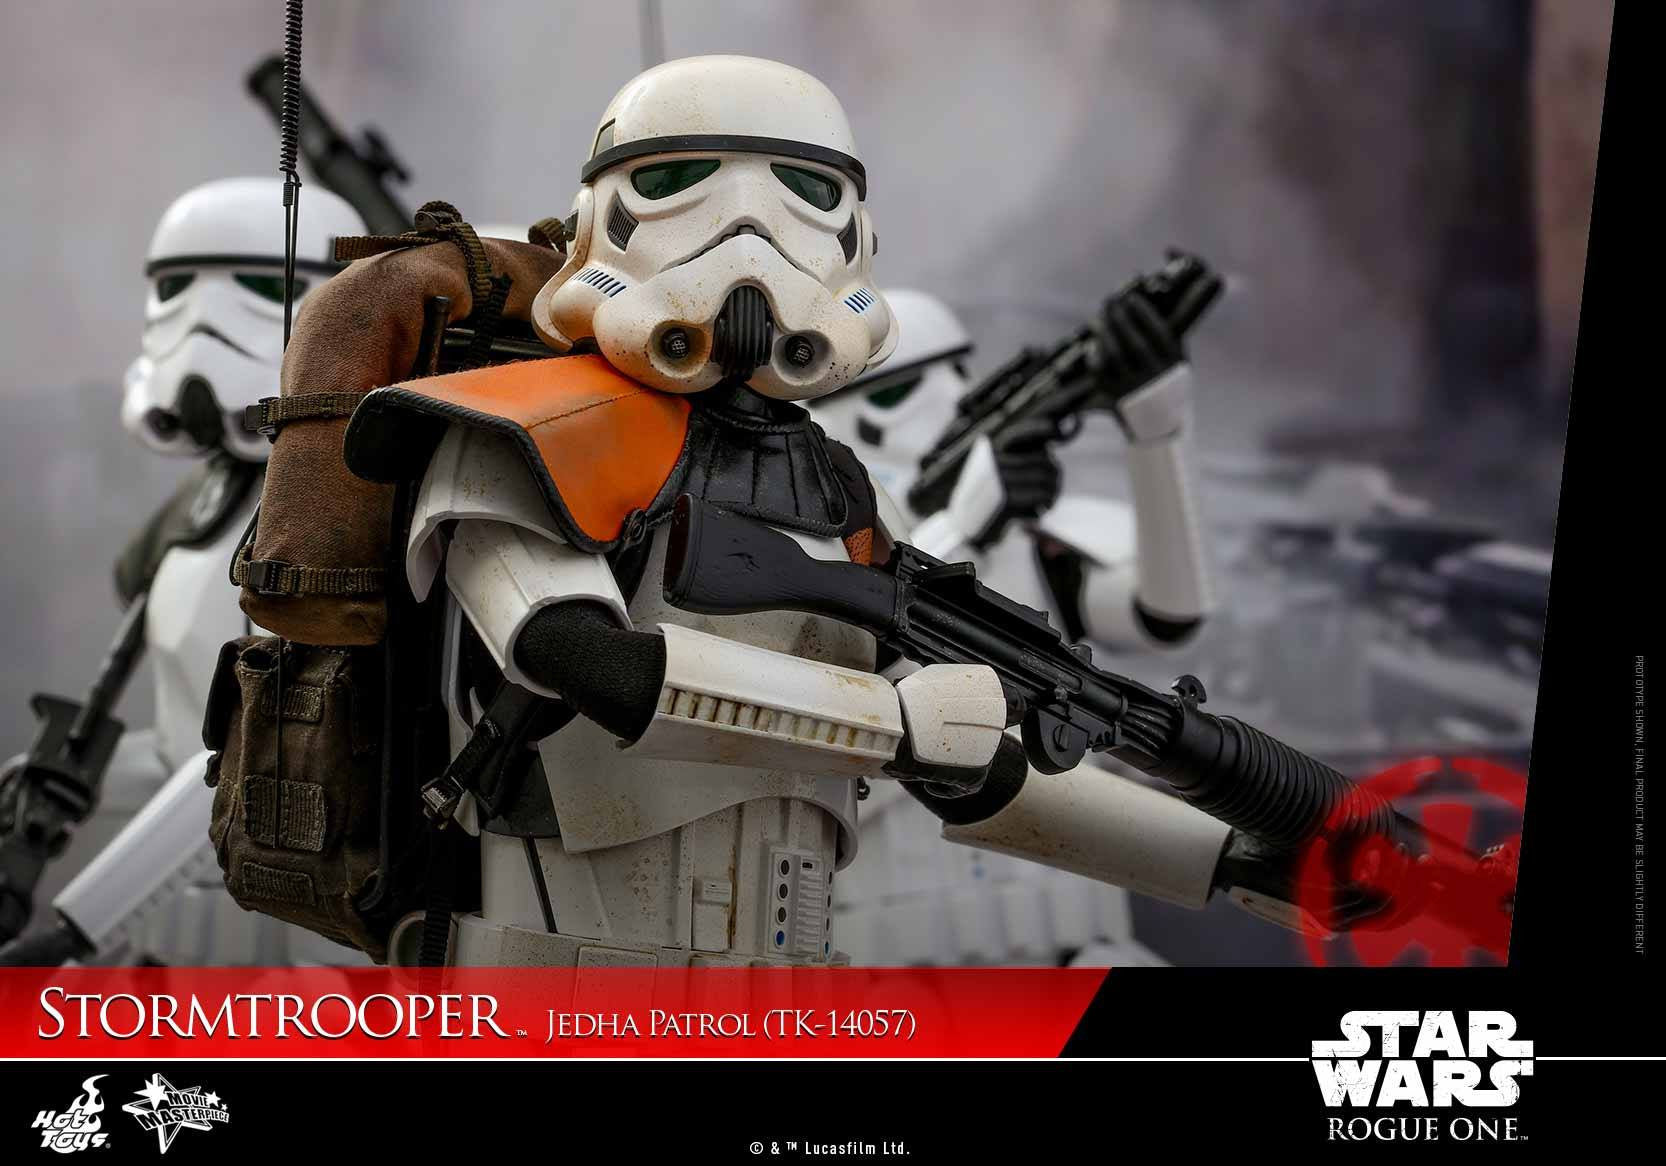 Hot Toys - MMS392 - Rogue One: A Star Wars Story - Stormtrooper Jedha Patrol (TK-14057) - Marvelous Toys - 2